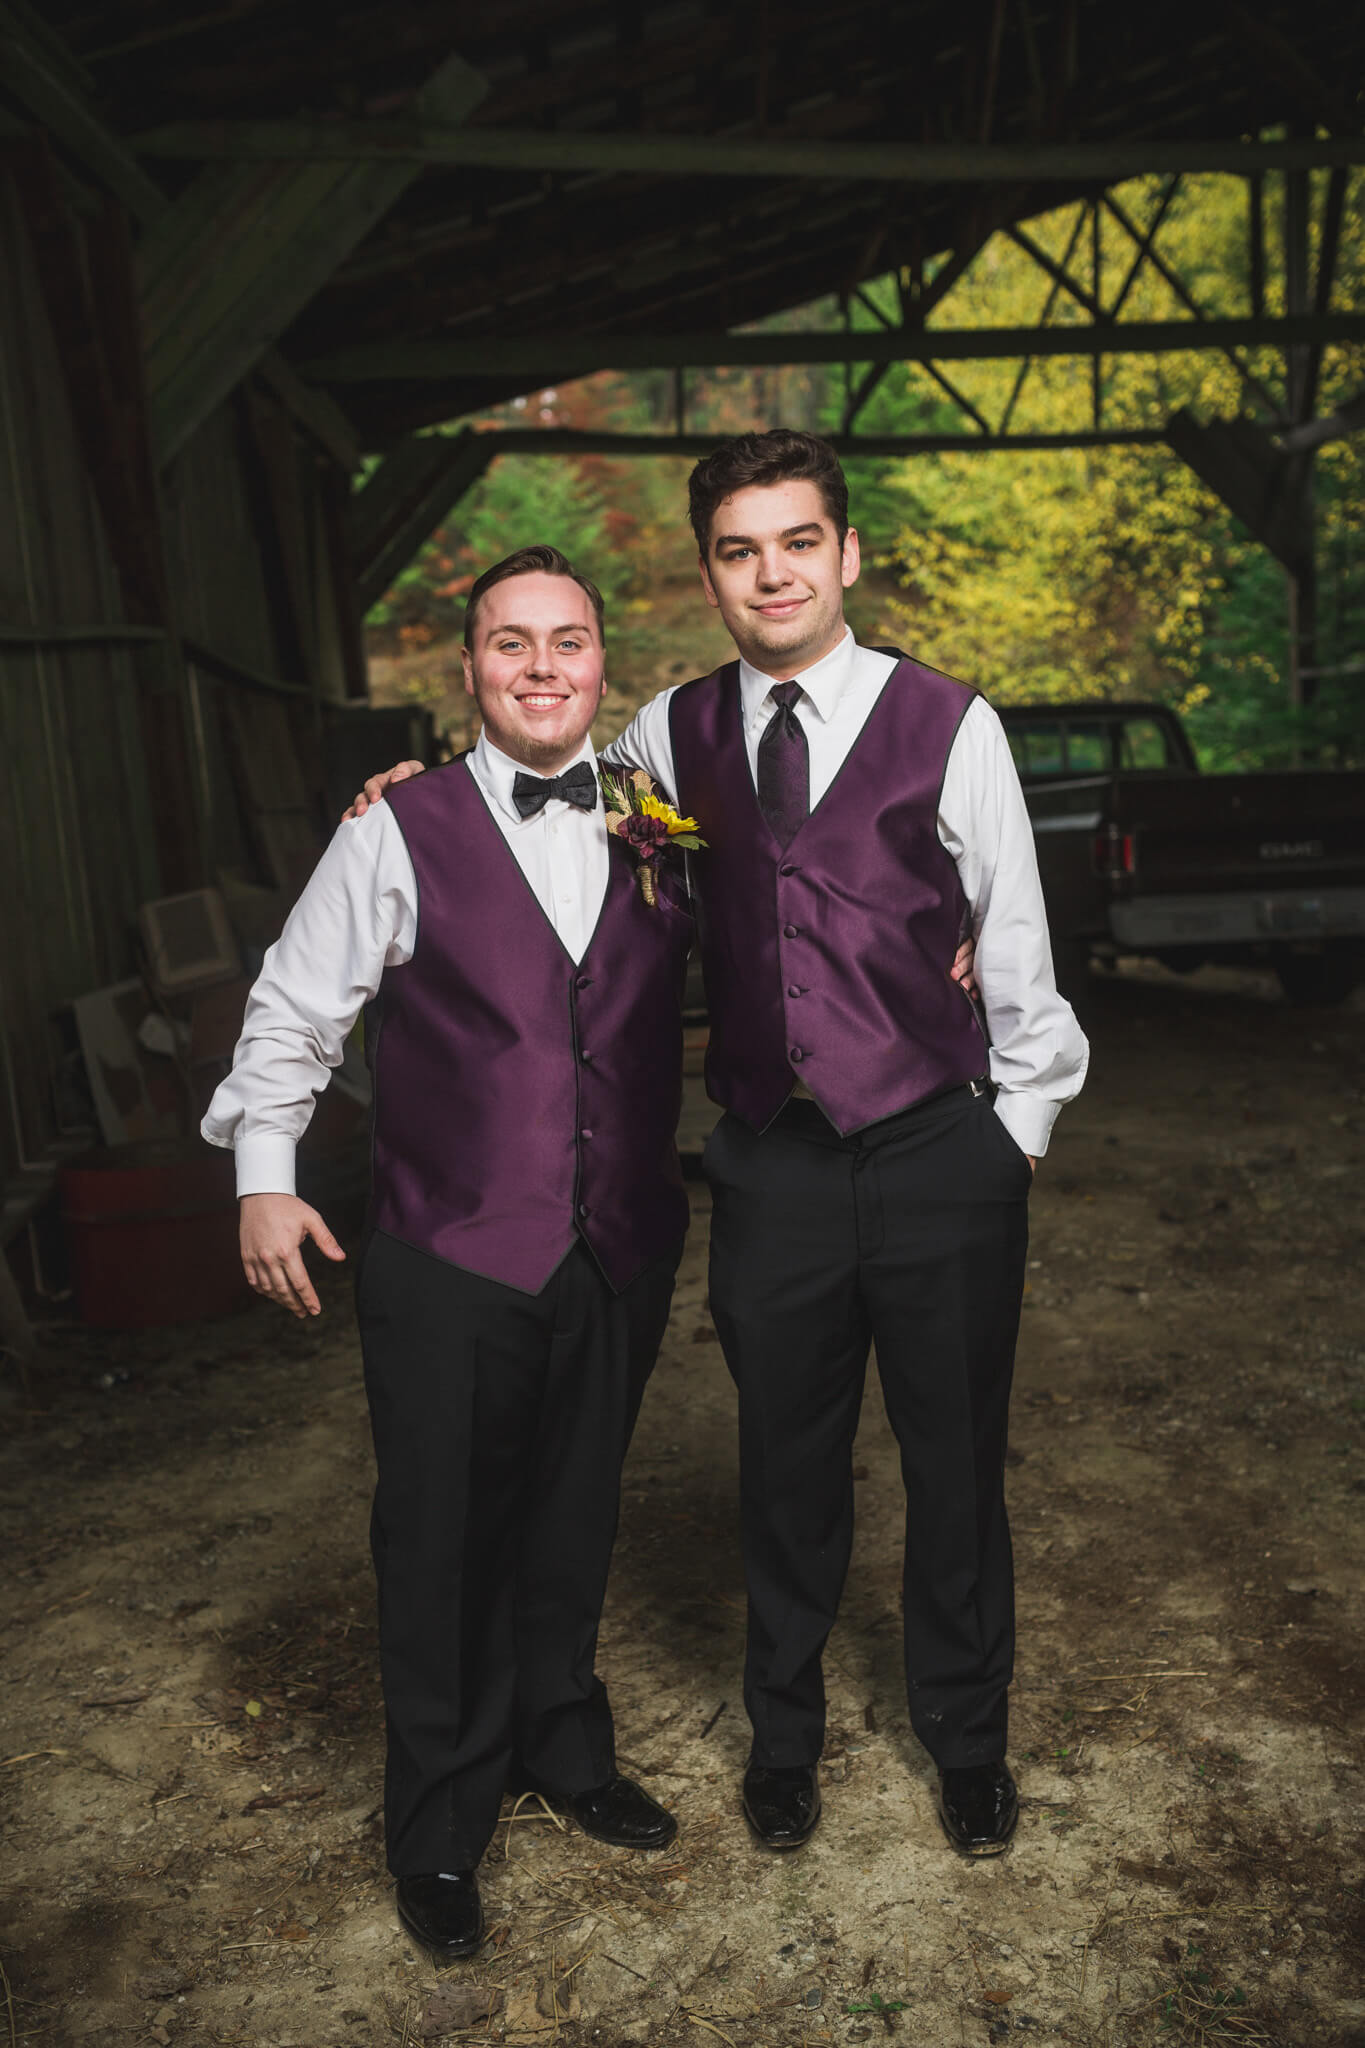 Mitcham's Barn Wedding-106.JPG